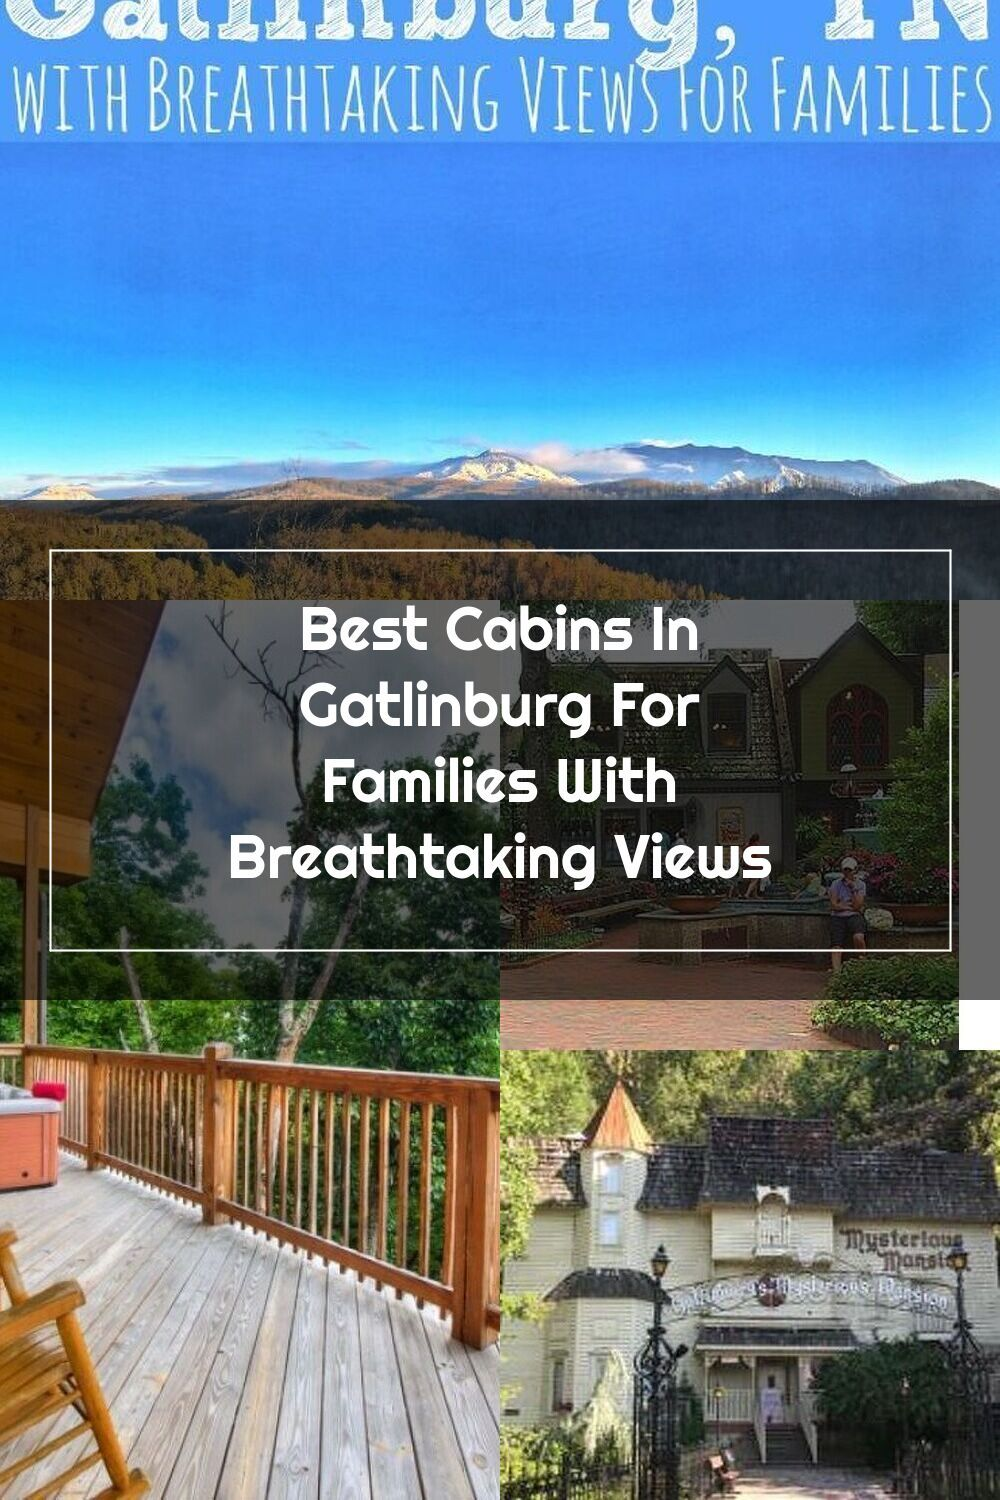 Cabins For Sale In Gatlinburg Tn By Owner : cabins, gatlinburg, owner, Cabins, Gatlinburg,, Breathtaking, Views, Families, Views,, Gatlinburg, Cabins,